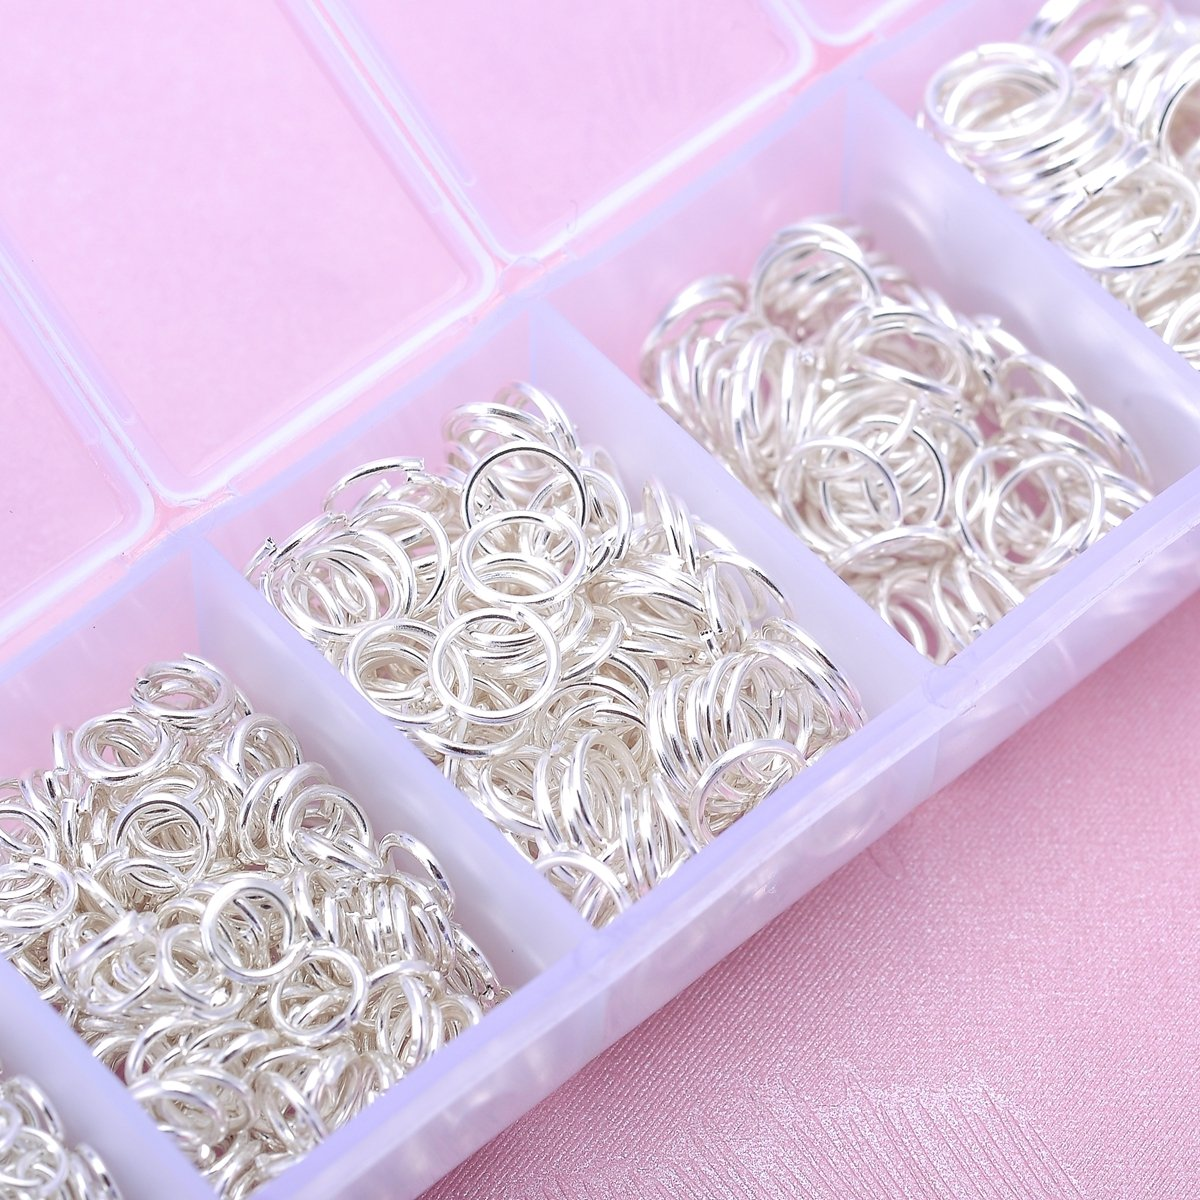 HooAMI 1450pcs Gold Plated Open Jump Rings 3mm 4mm 5mm 6mm 7mm 8mm 10mm Box Set for DIY Jewelry Making Findings